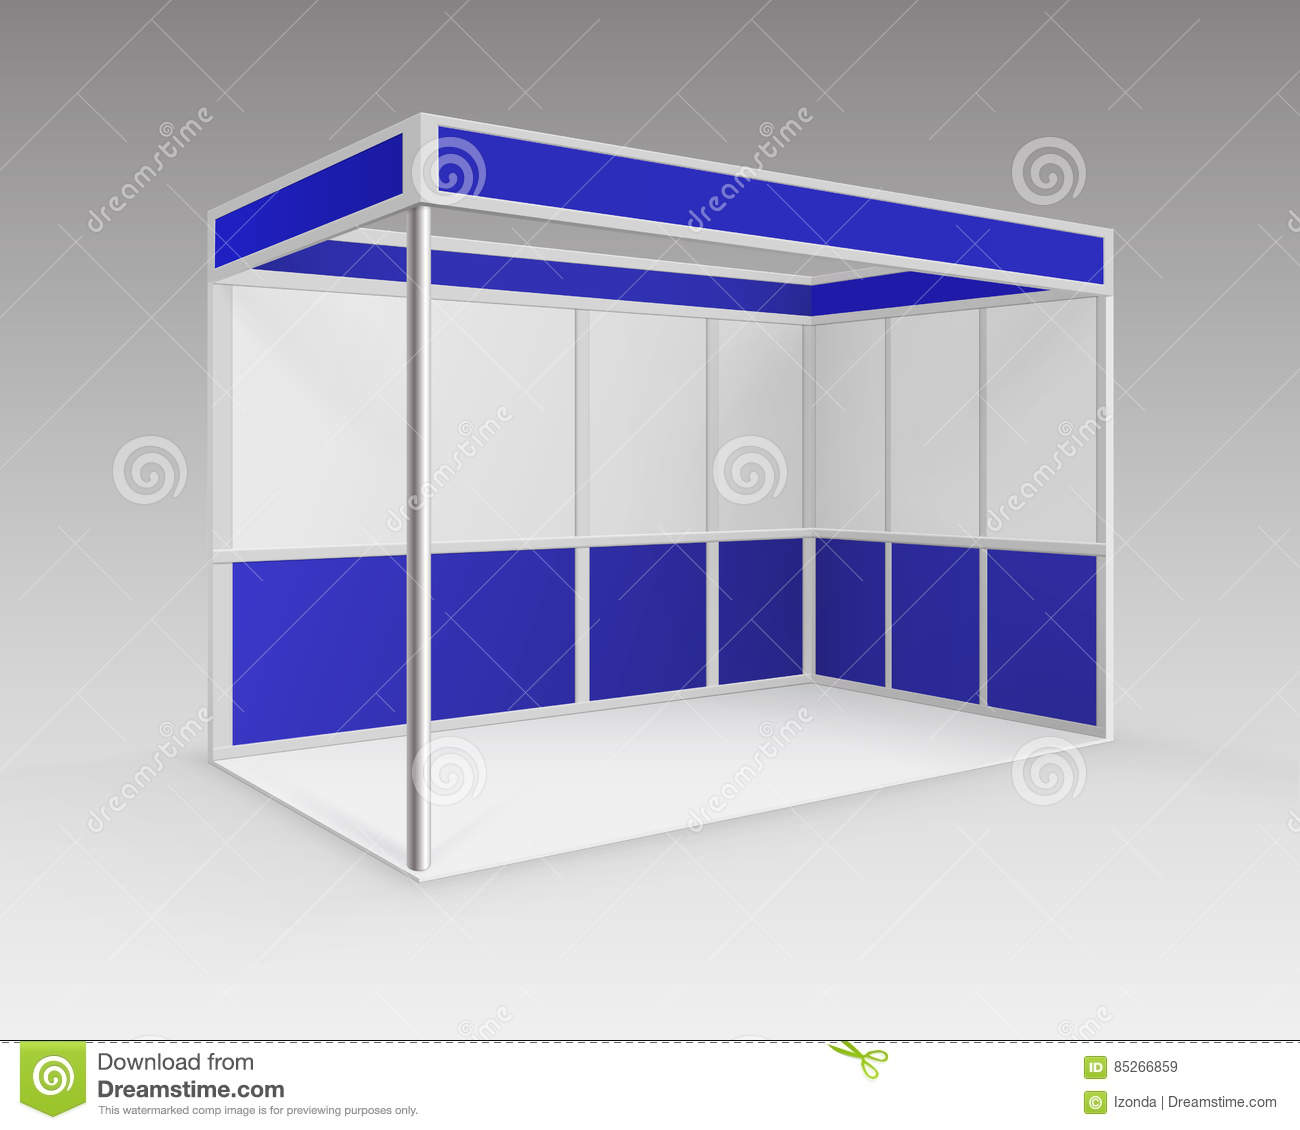 Exhibition Stand Vector : Blank white trade exhibition stand cartoon vector